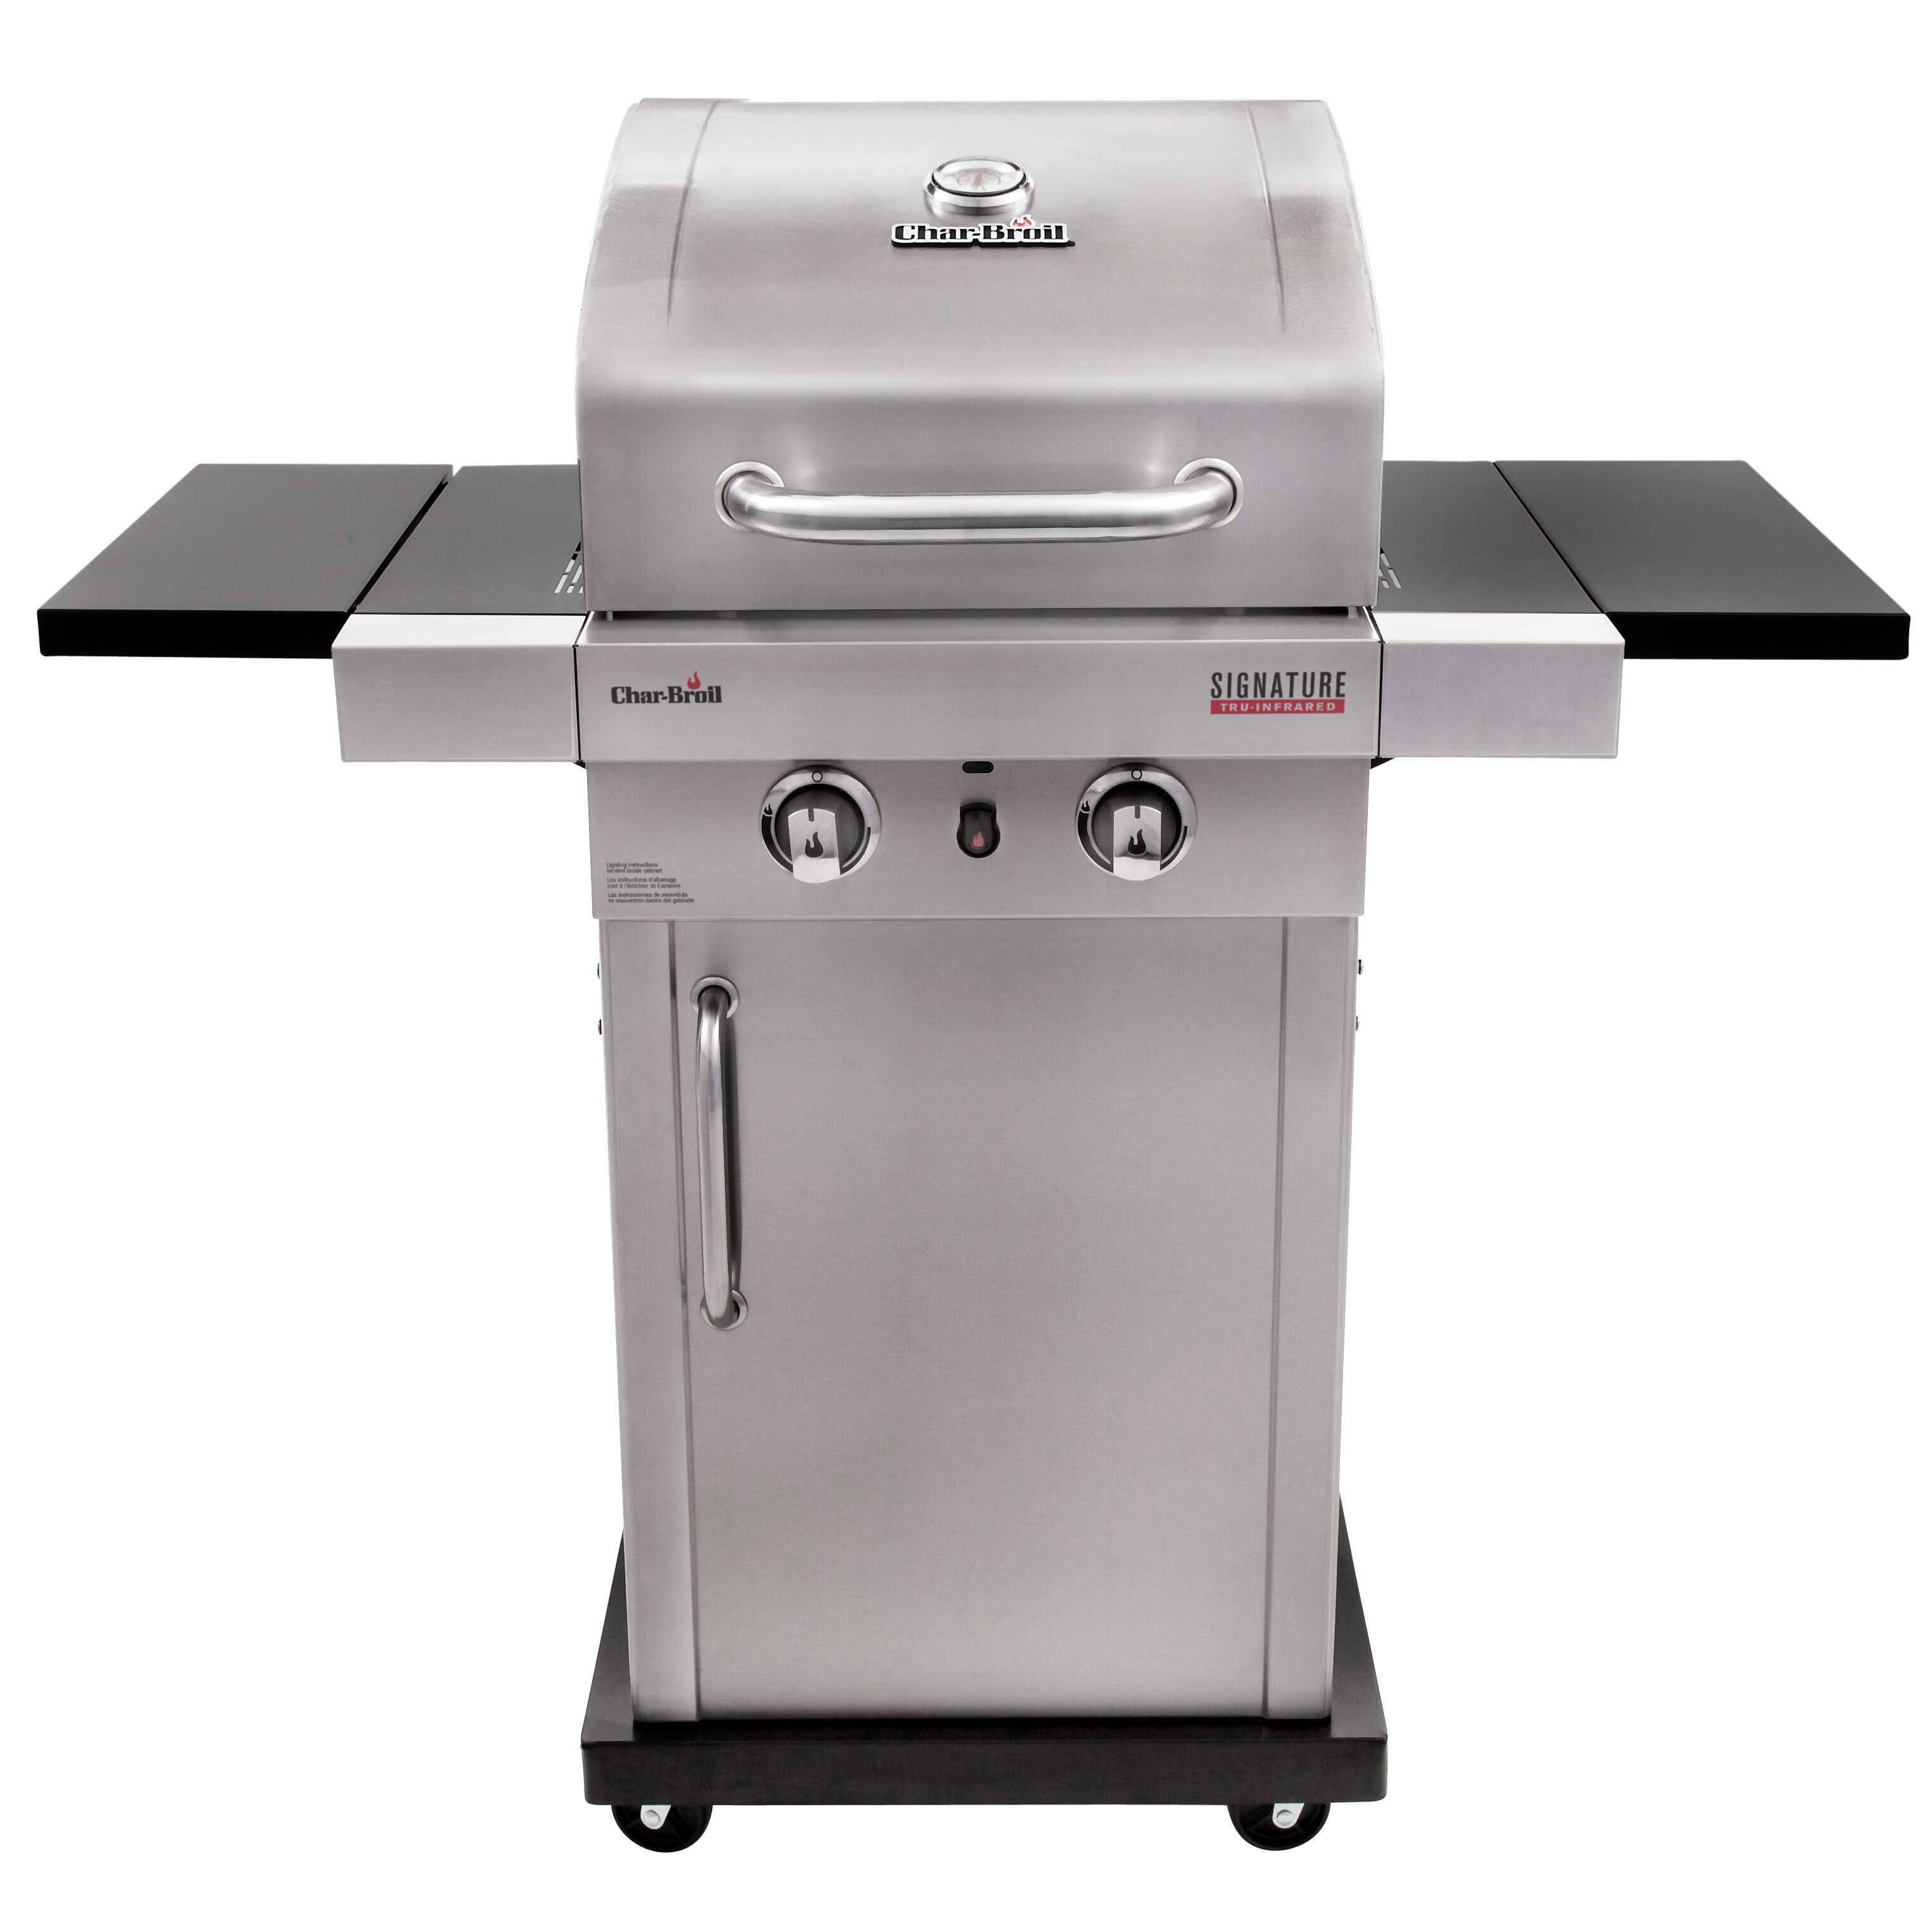 Springtime Wreaths Charbroil Signature Infrared 2 Burner Propane Gas Grill